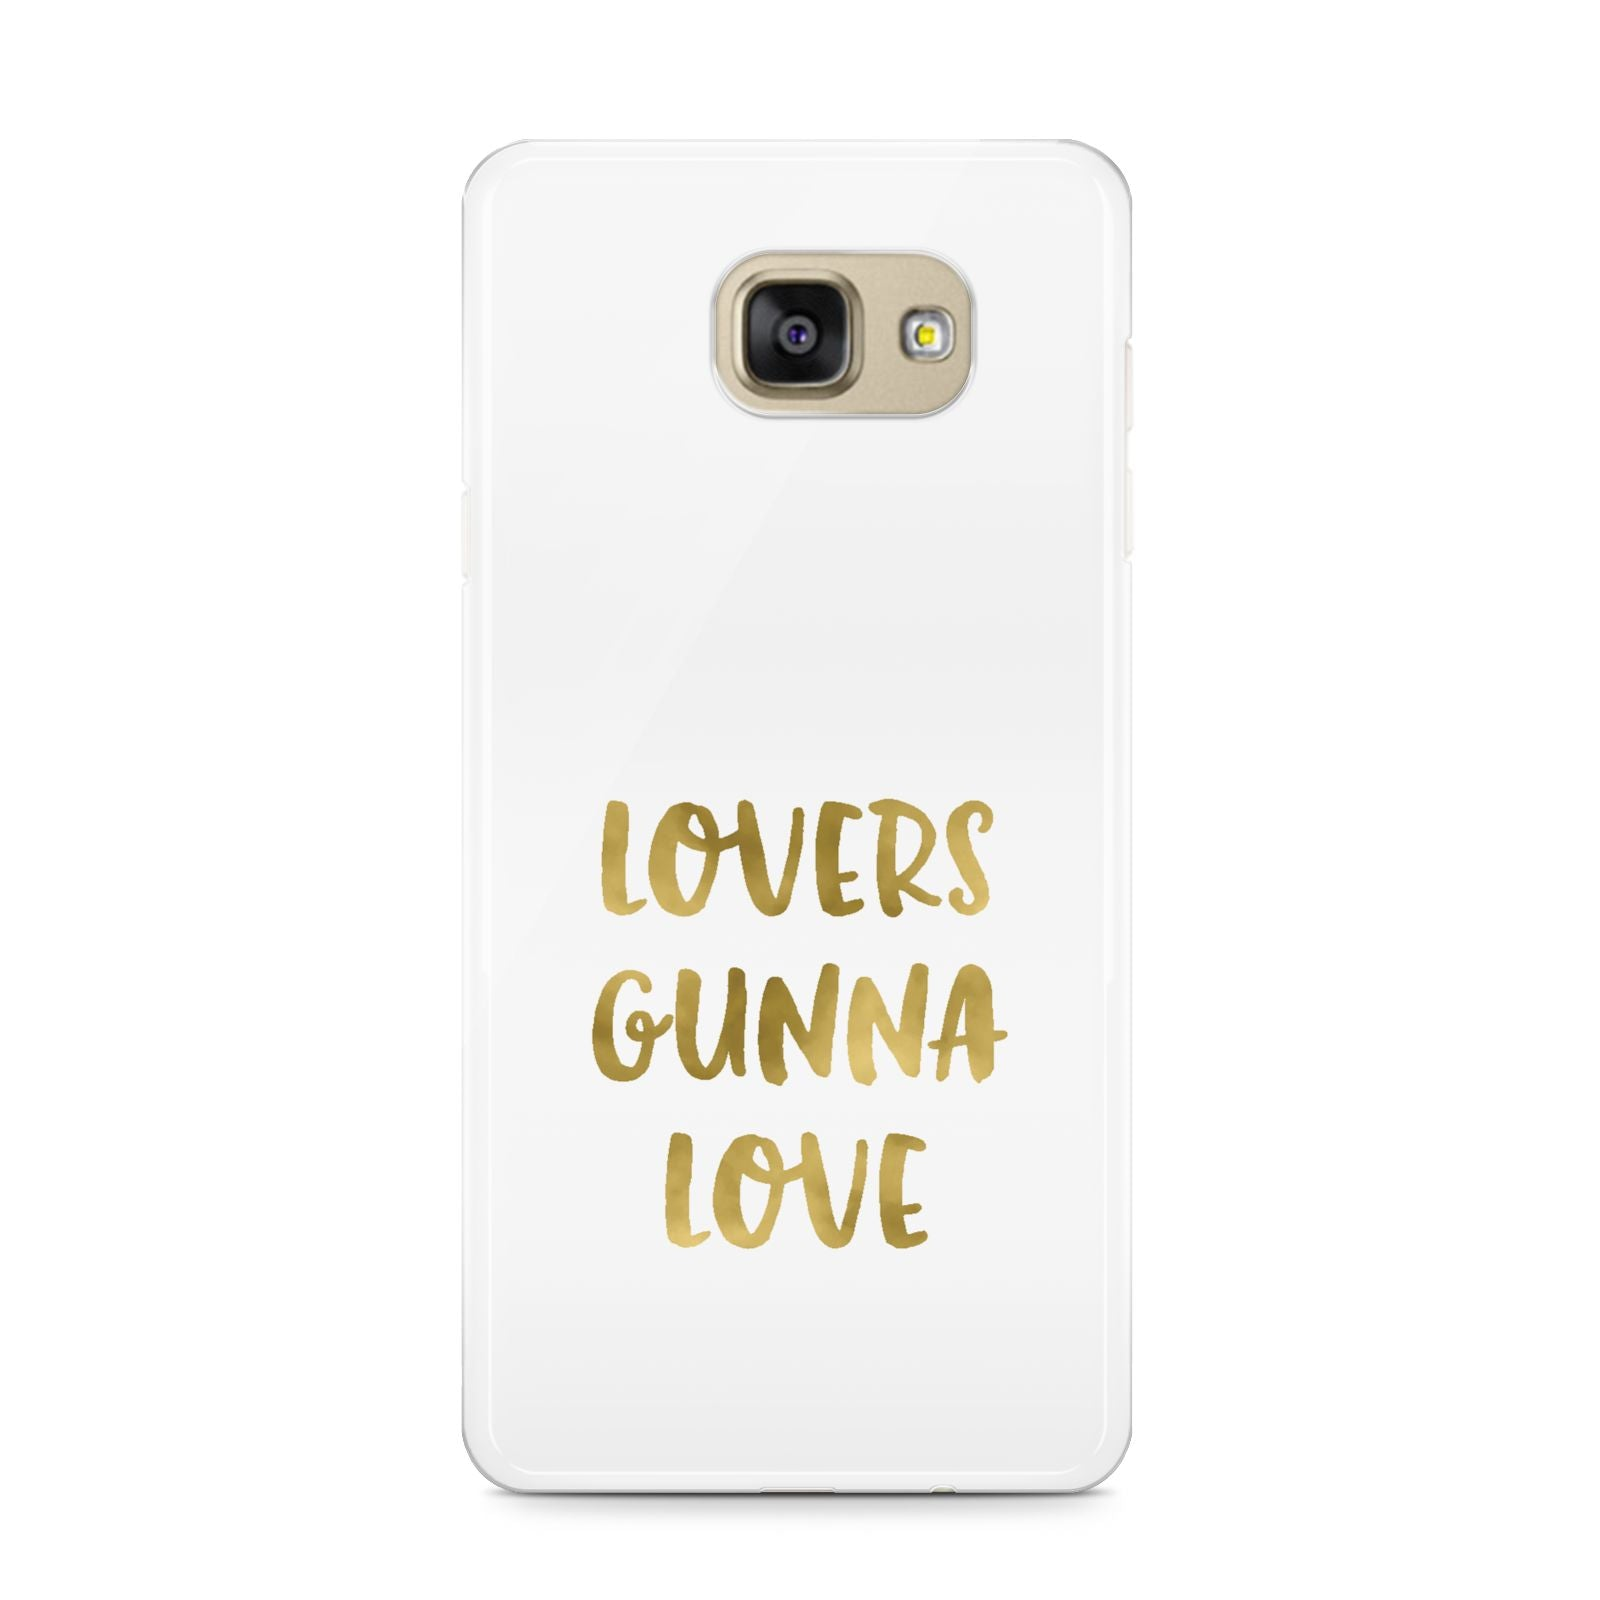 Lovers Gunna Love Real Gold Foil Samsung Galaxy A9 2016 Case on gold phone